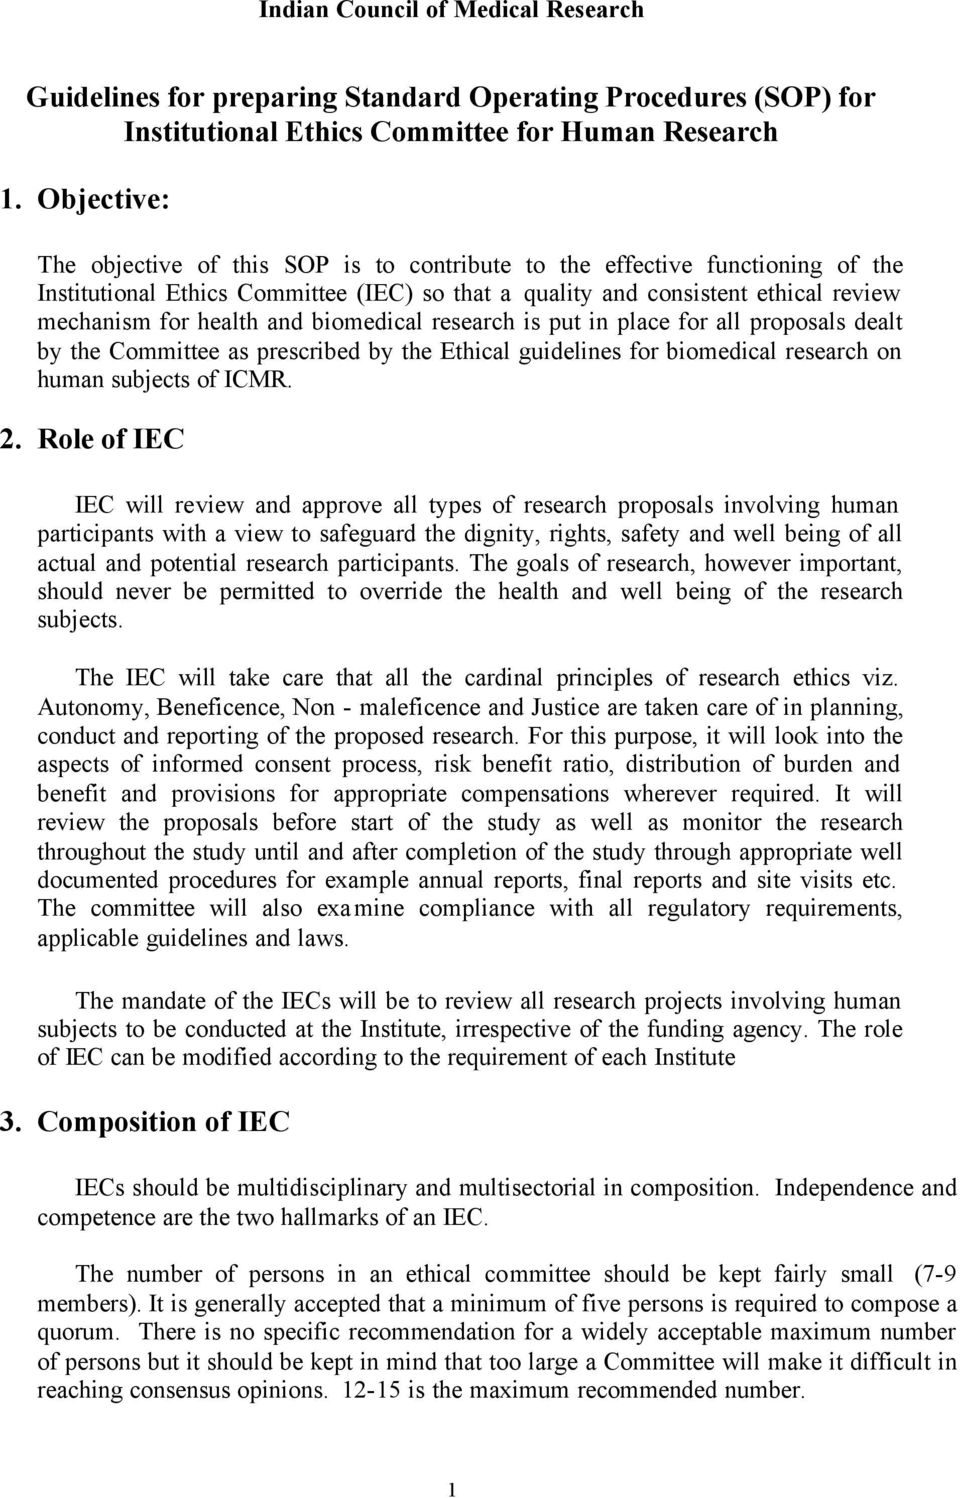 biomedical research is put in place for all proposals dealt by the Committee as prescribed by the Ethical guidelines for biomedical research on human subjects of ICMR. 2.